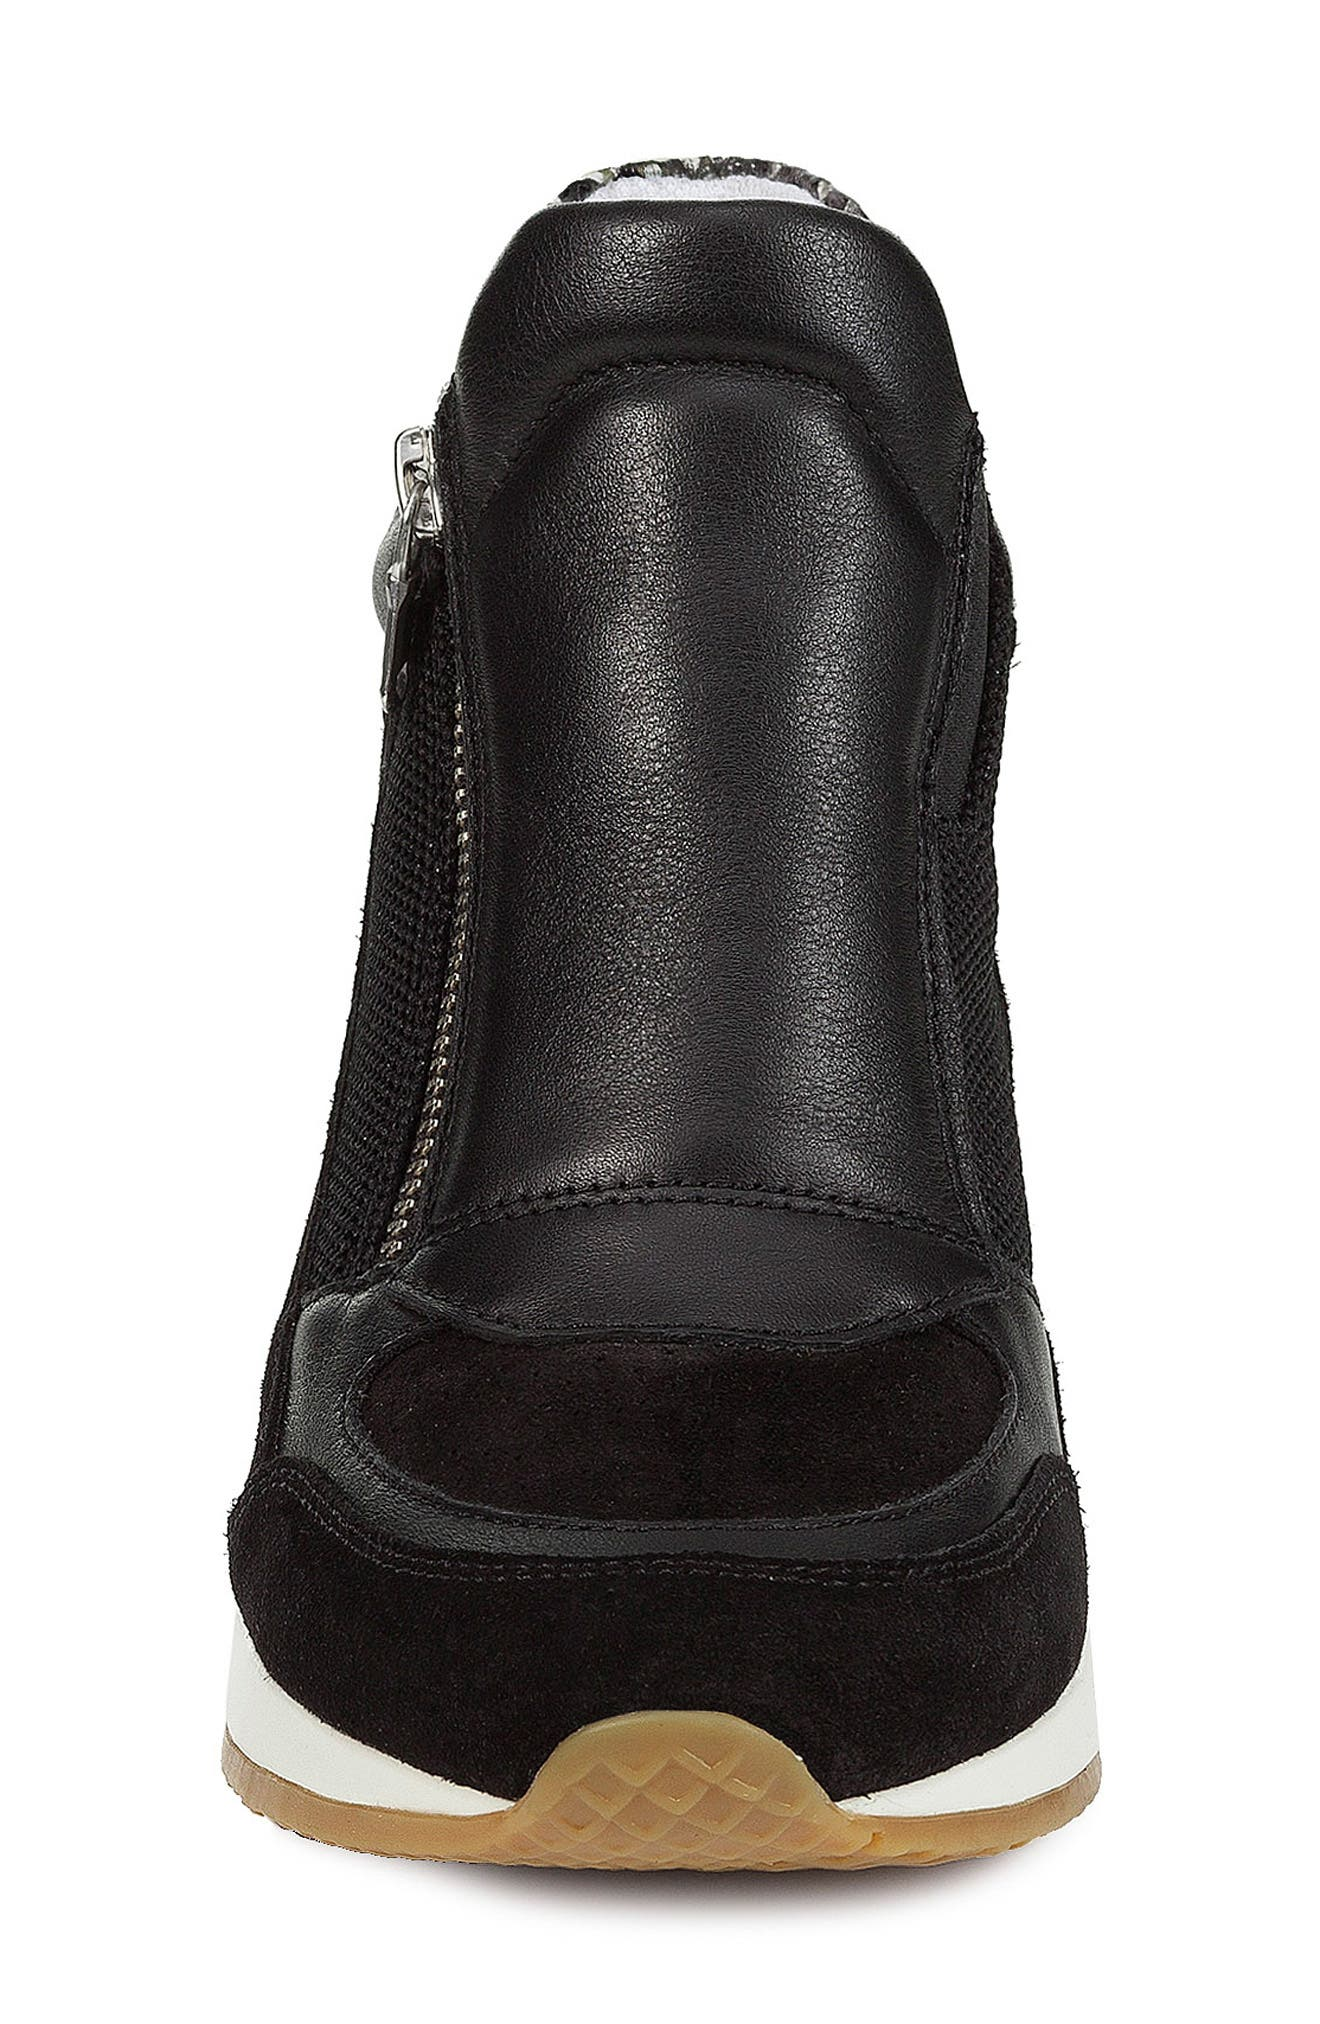 Nydame Wedge Sneaker,                             Alternate thumbnail 4, color,                             BLACK/ BLACK LEATHER